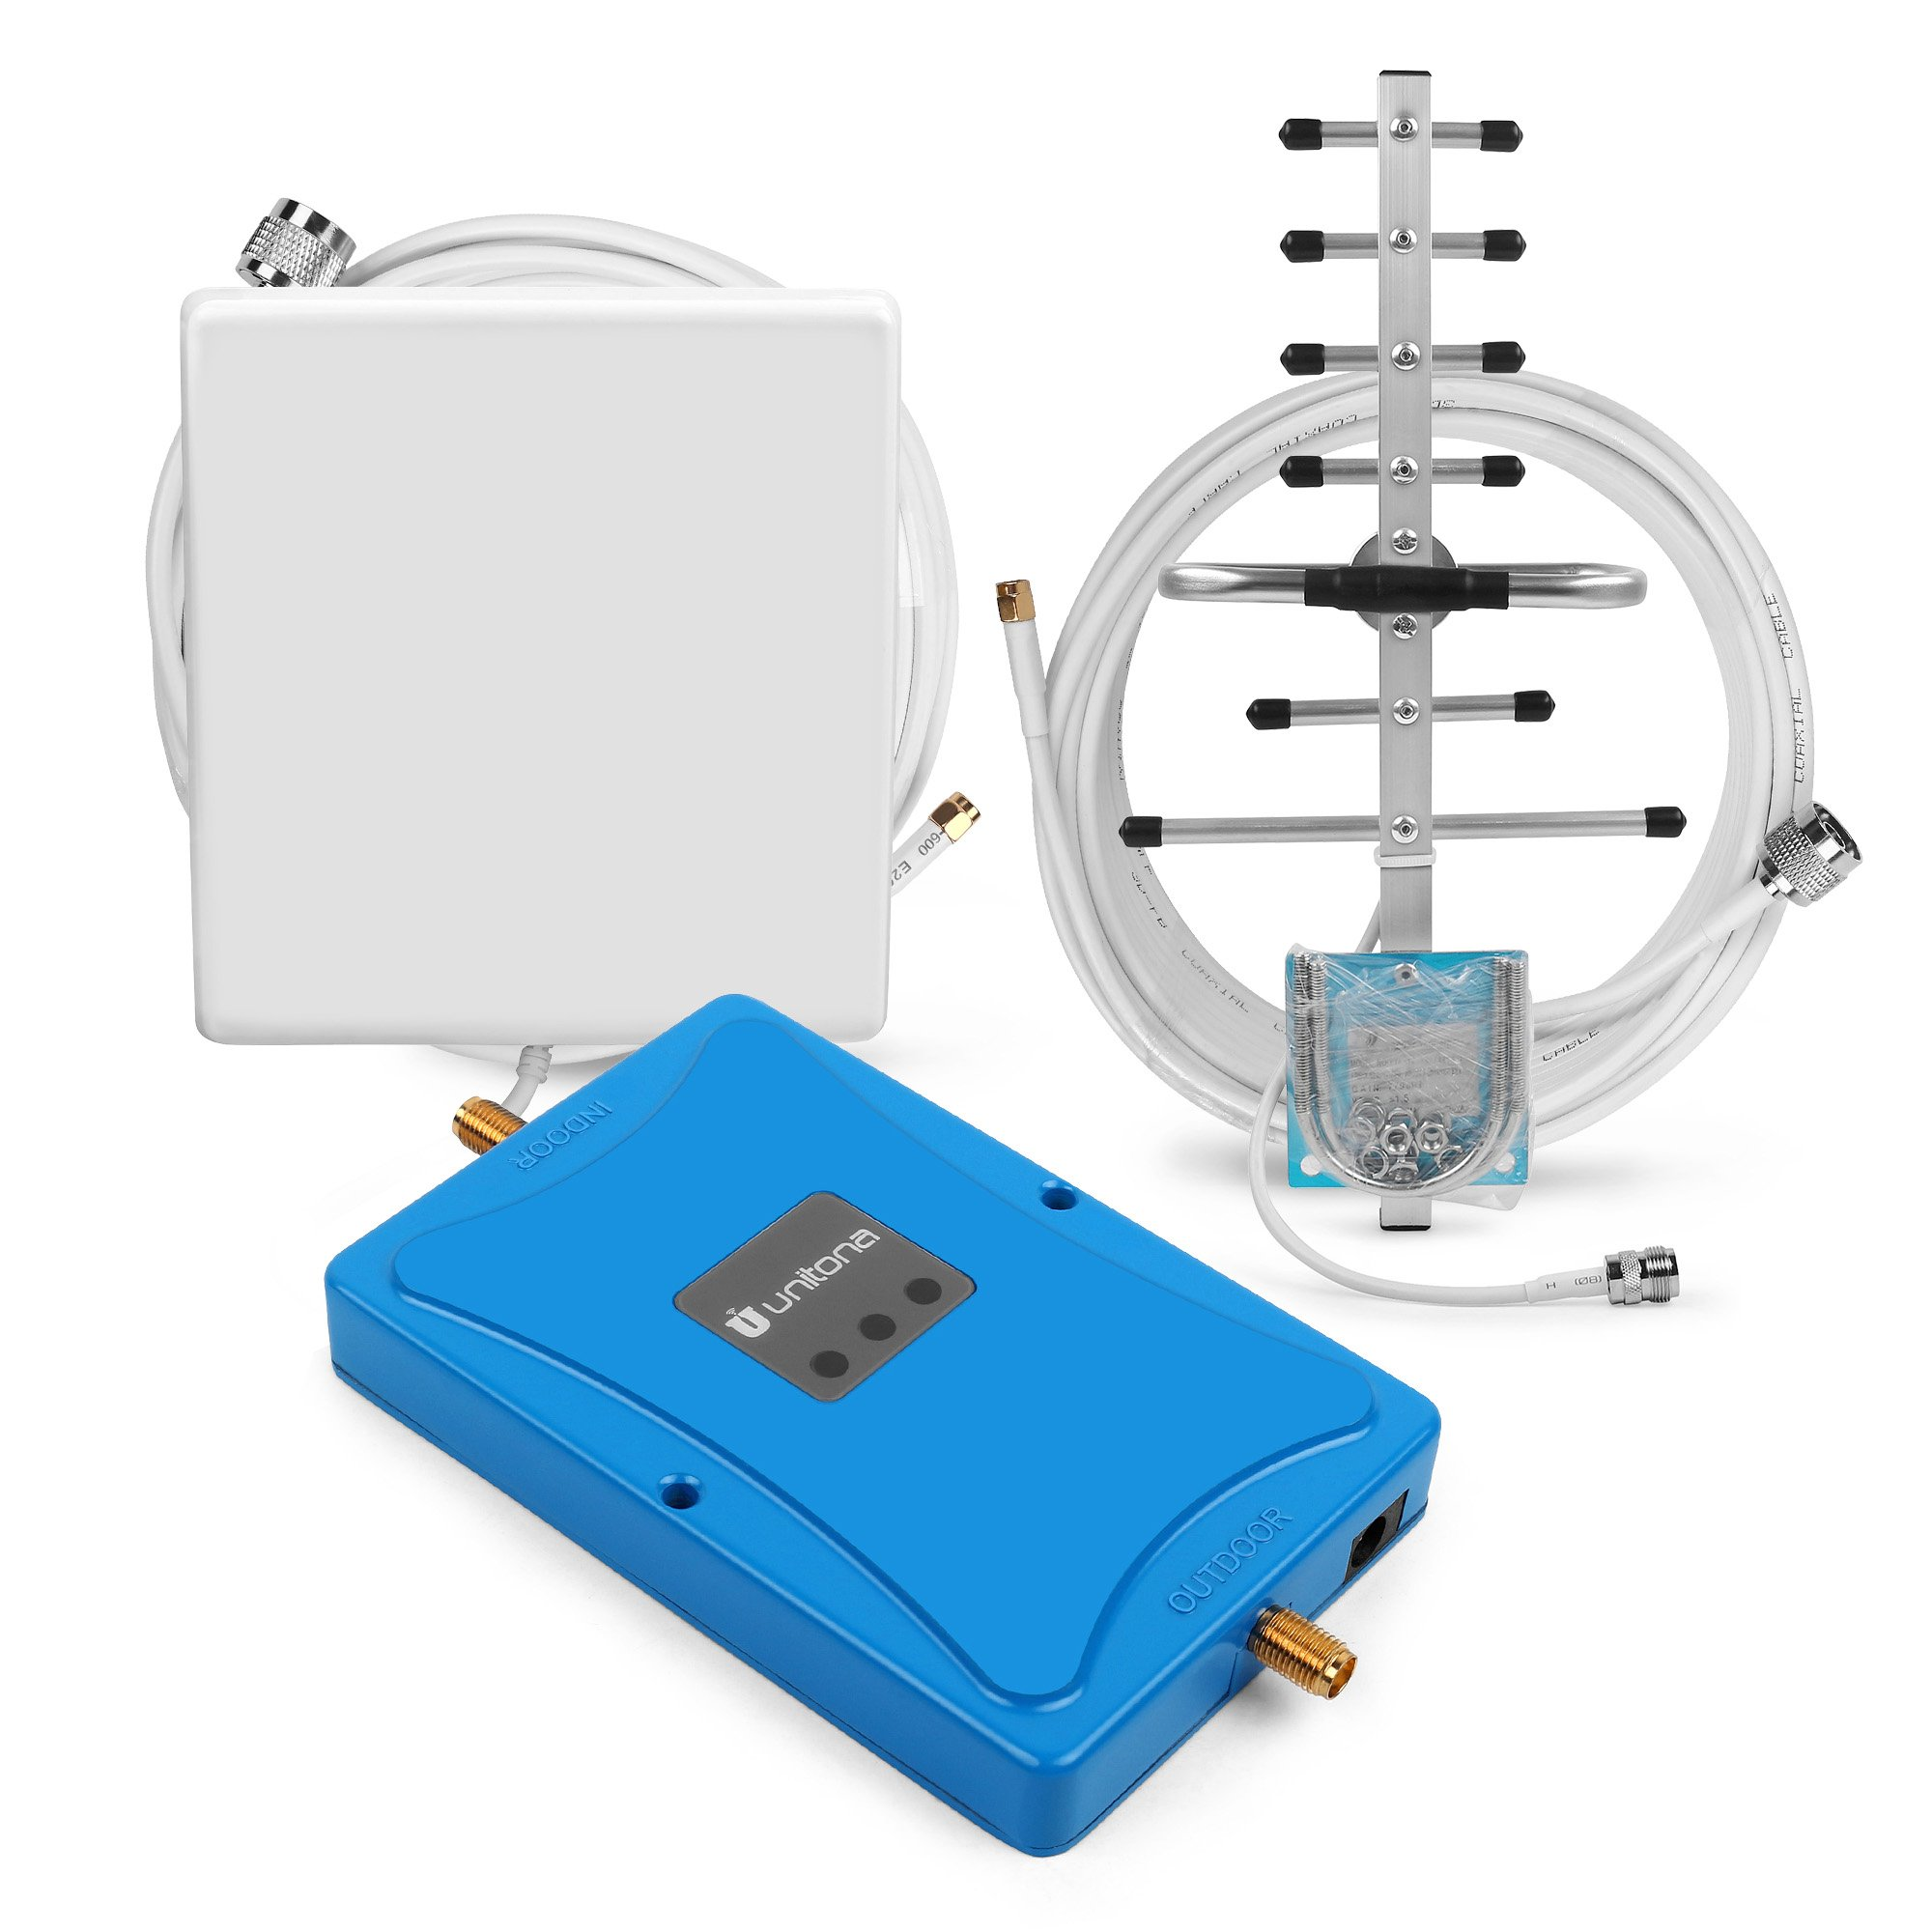 Single Band 1900MHz 72dB Gain Cell Phone Signal Booster Mobile Phone Wireless Repeater + Interial Outerial Antennas for Home/Office Use (panel+yagi)